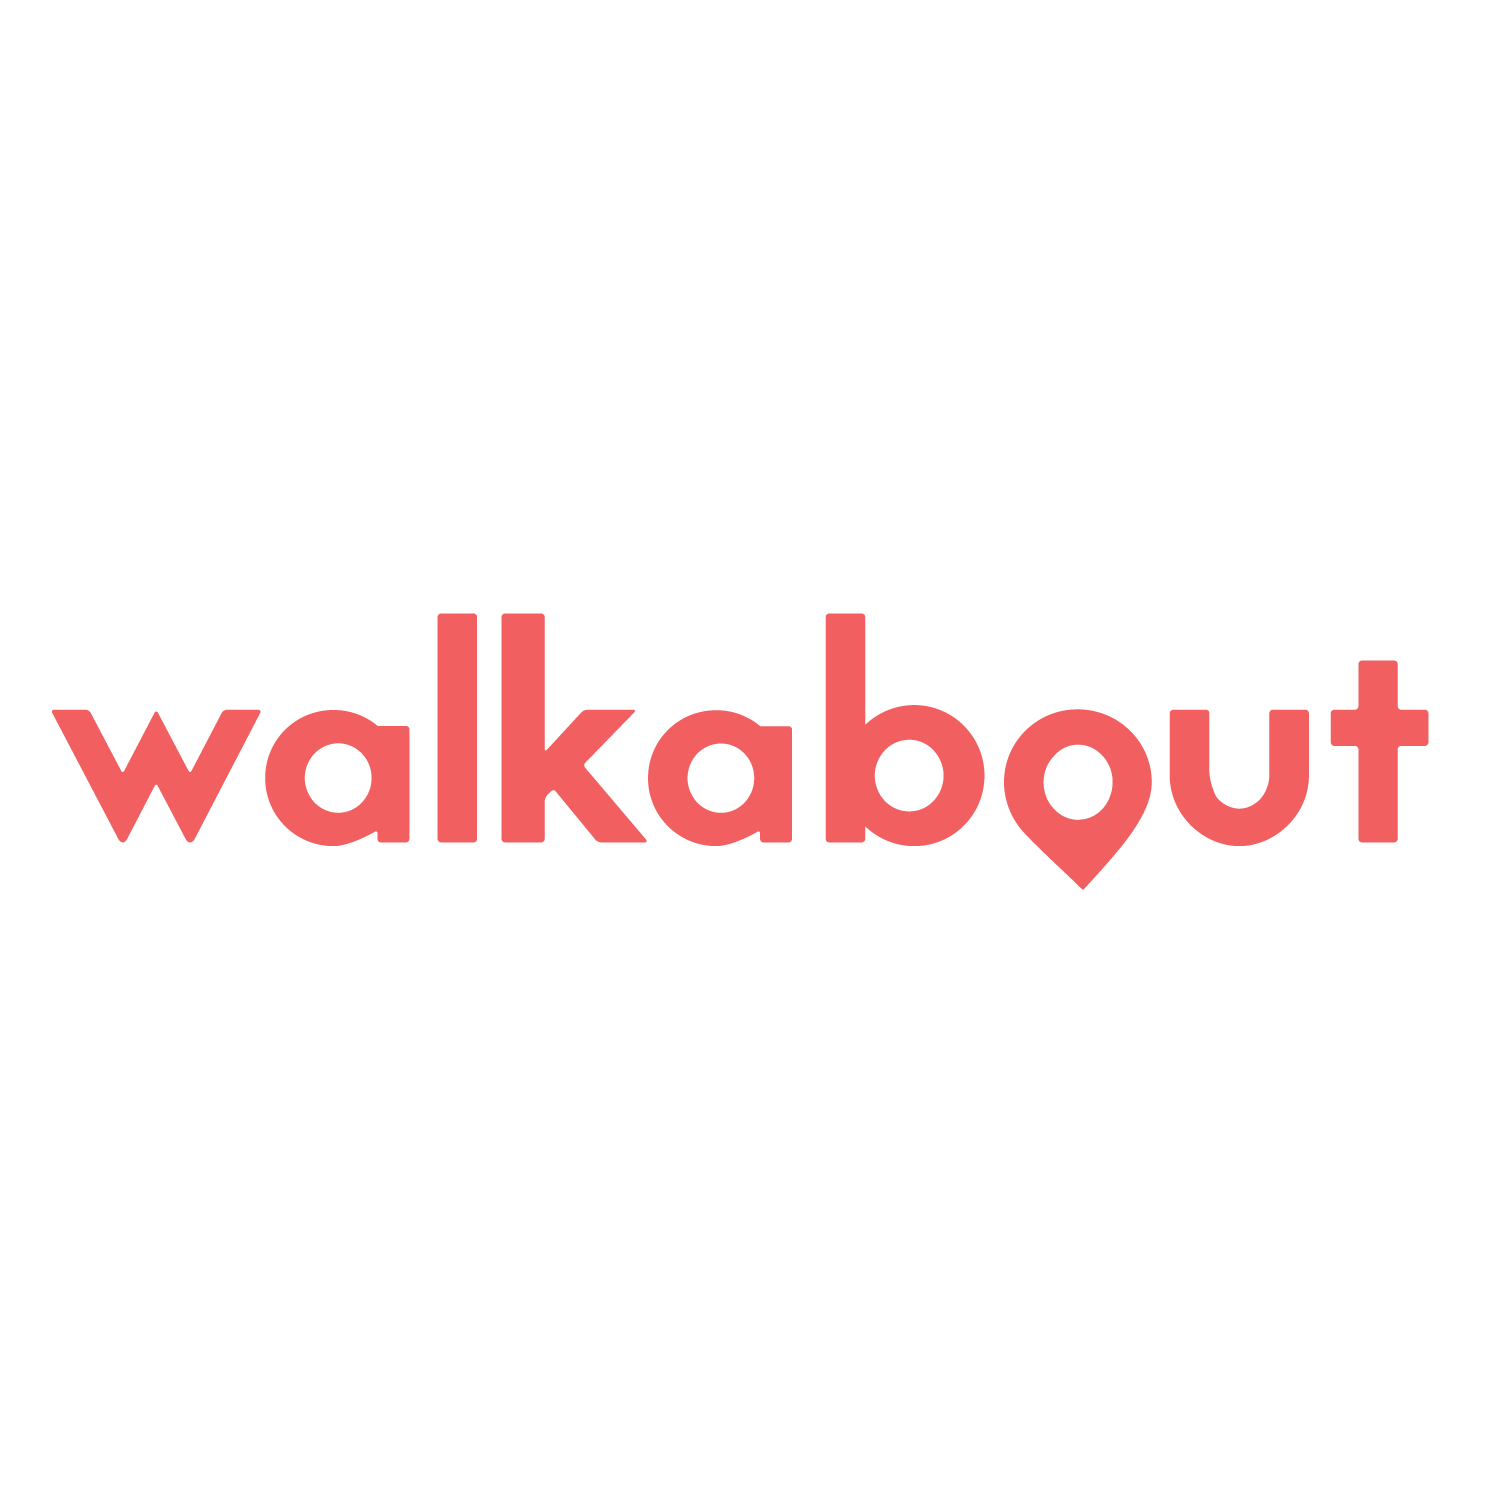 Walkabout_logo